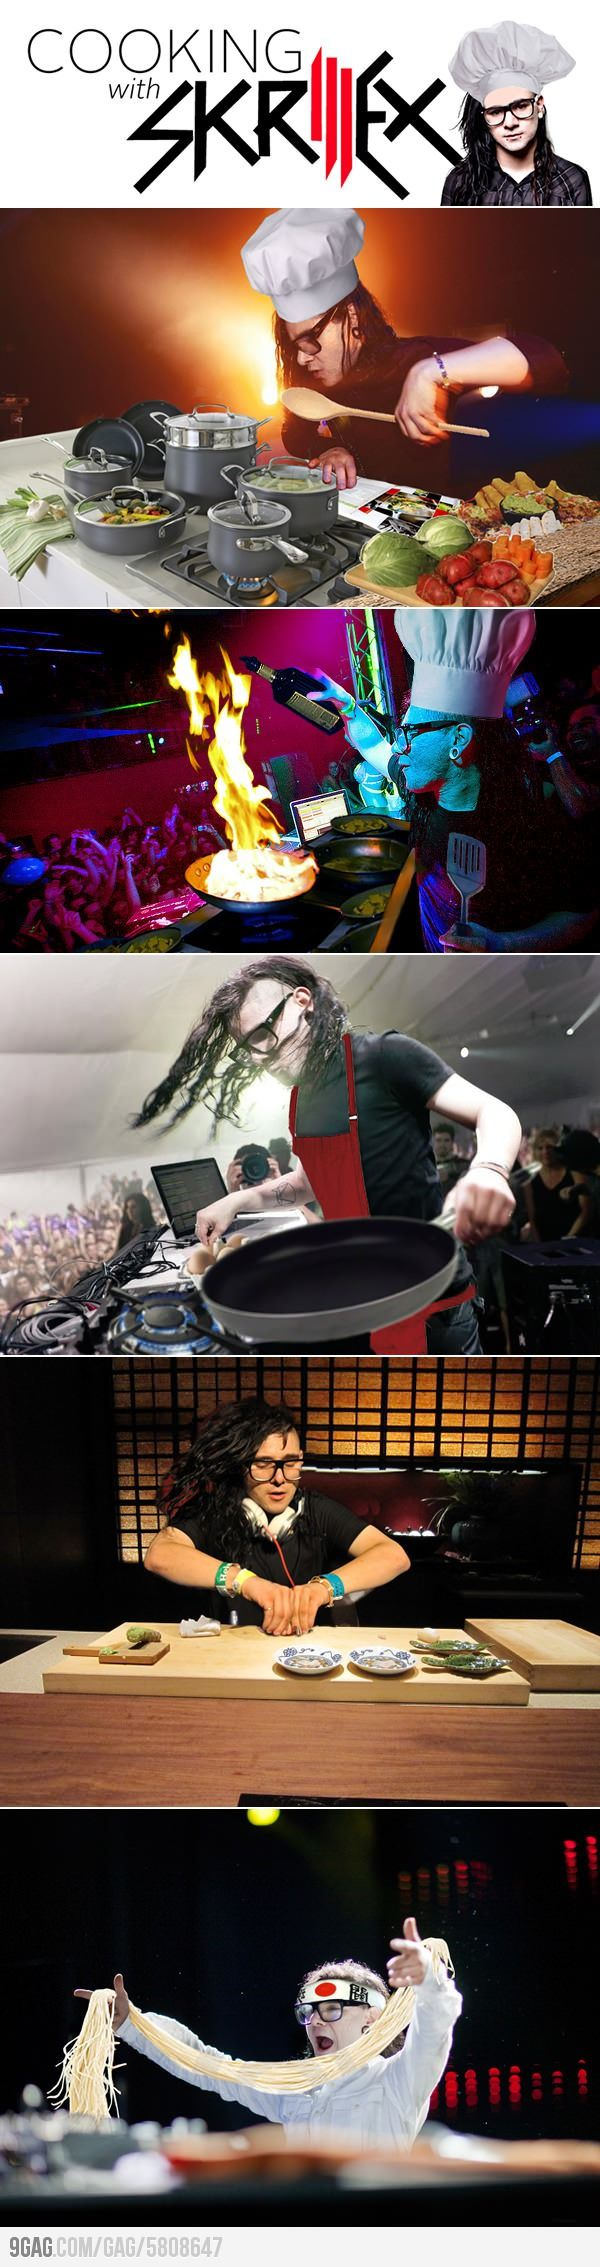 Cooking with Skrillex hahaha